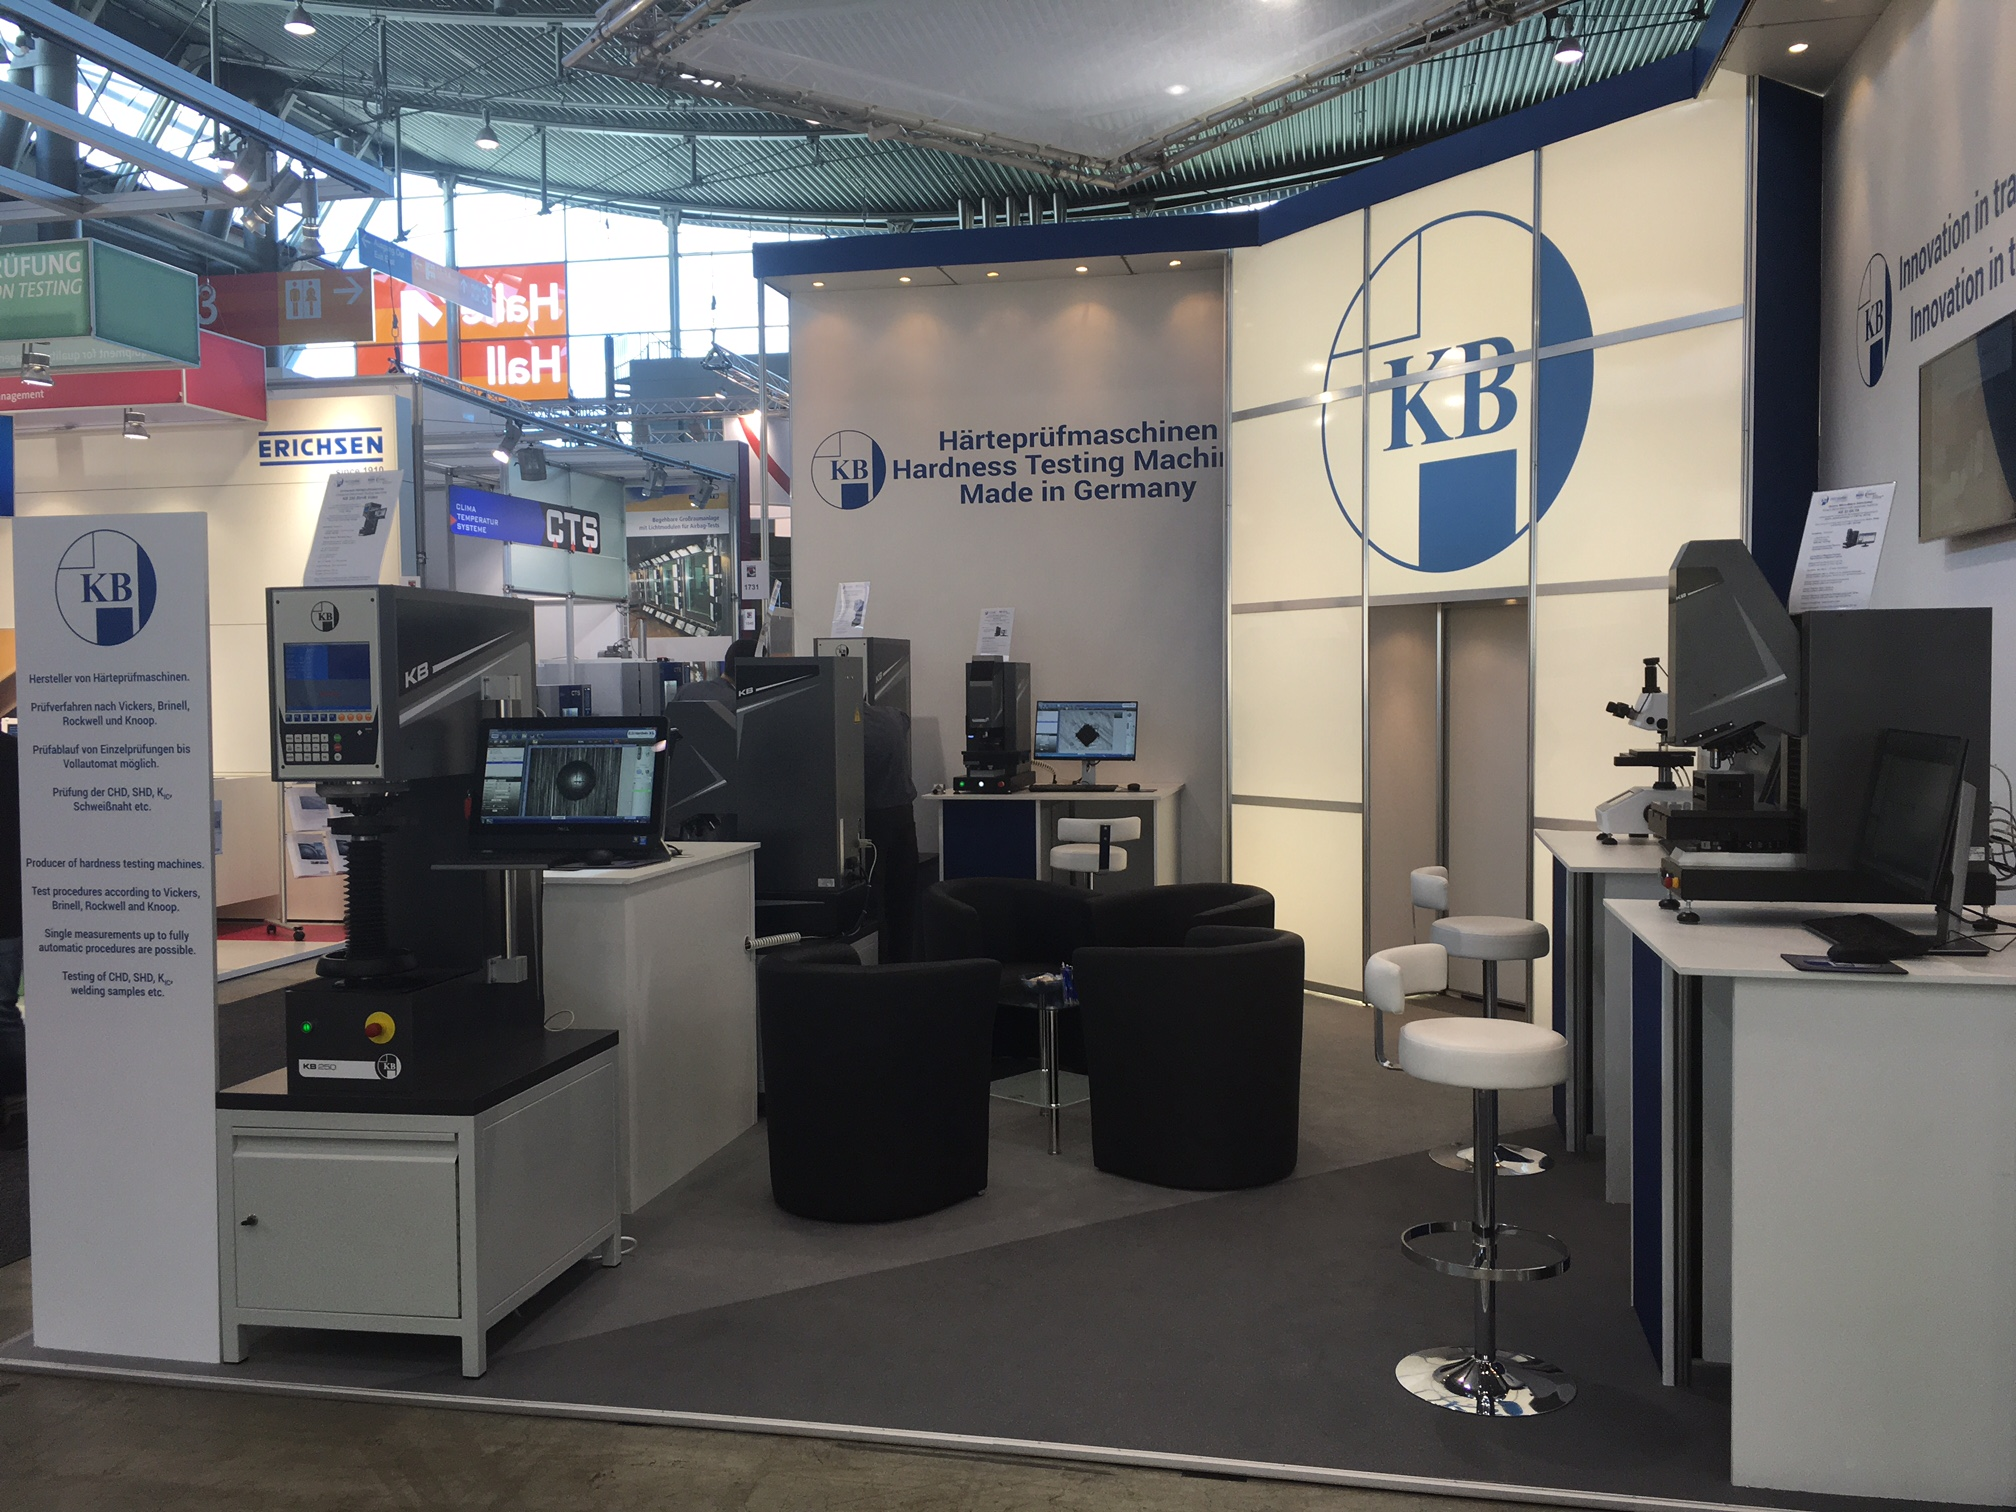 Impressions from the exhibition stand